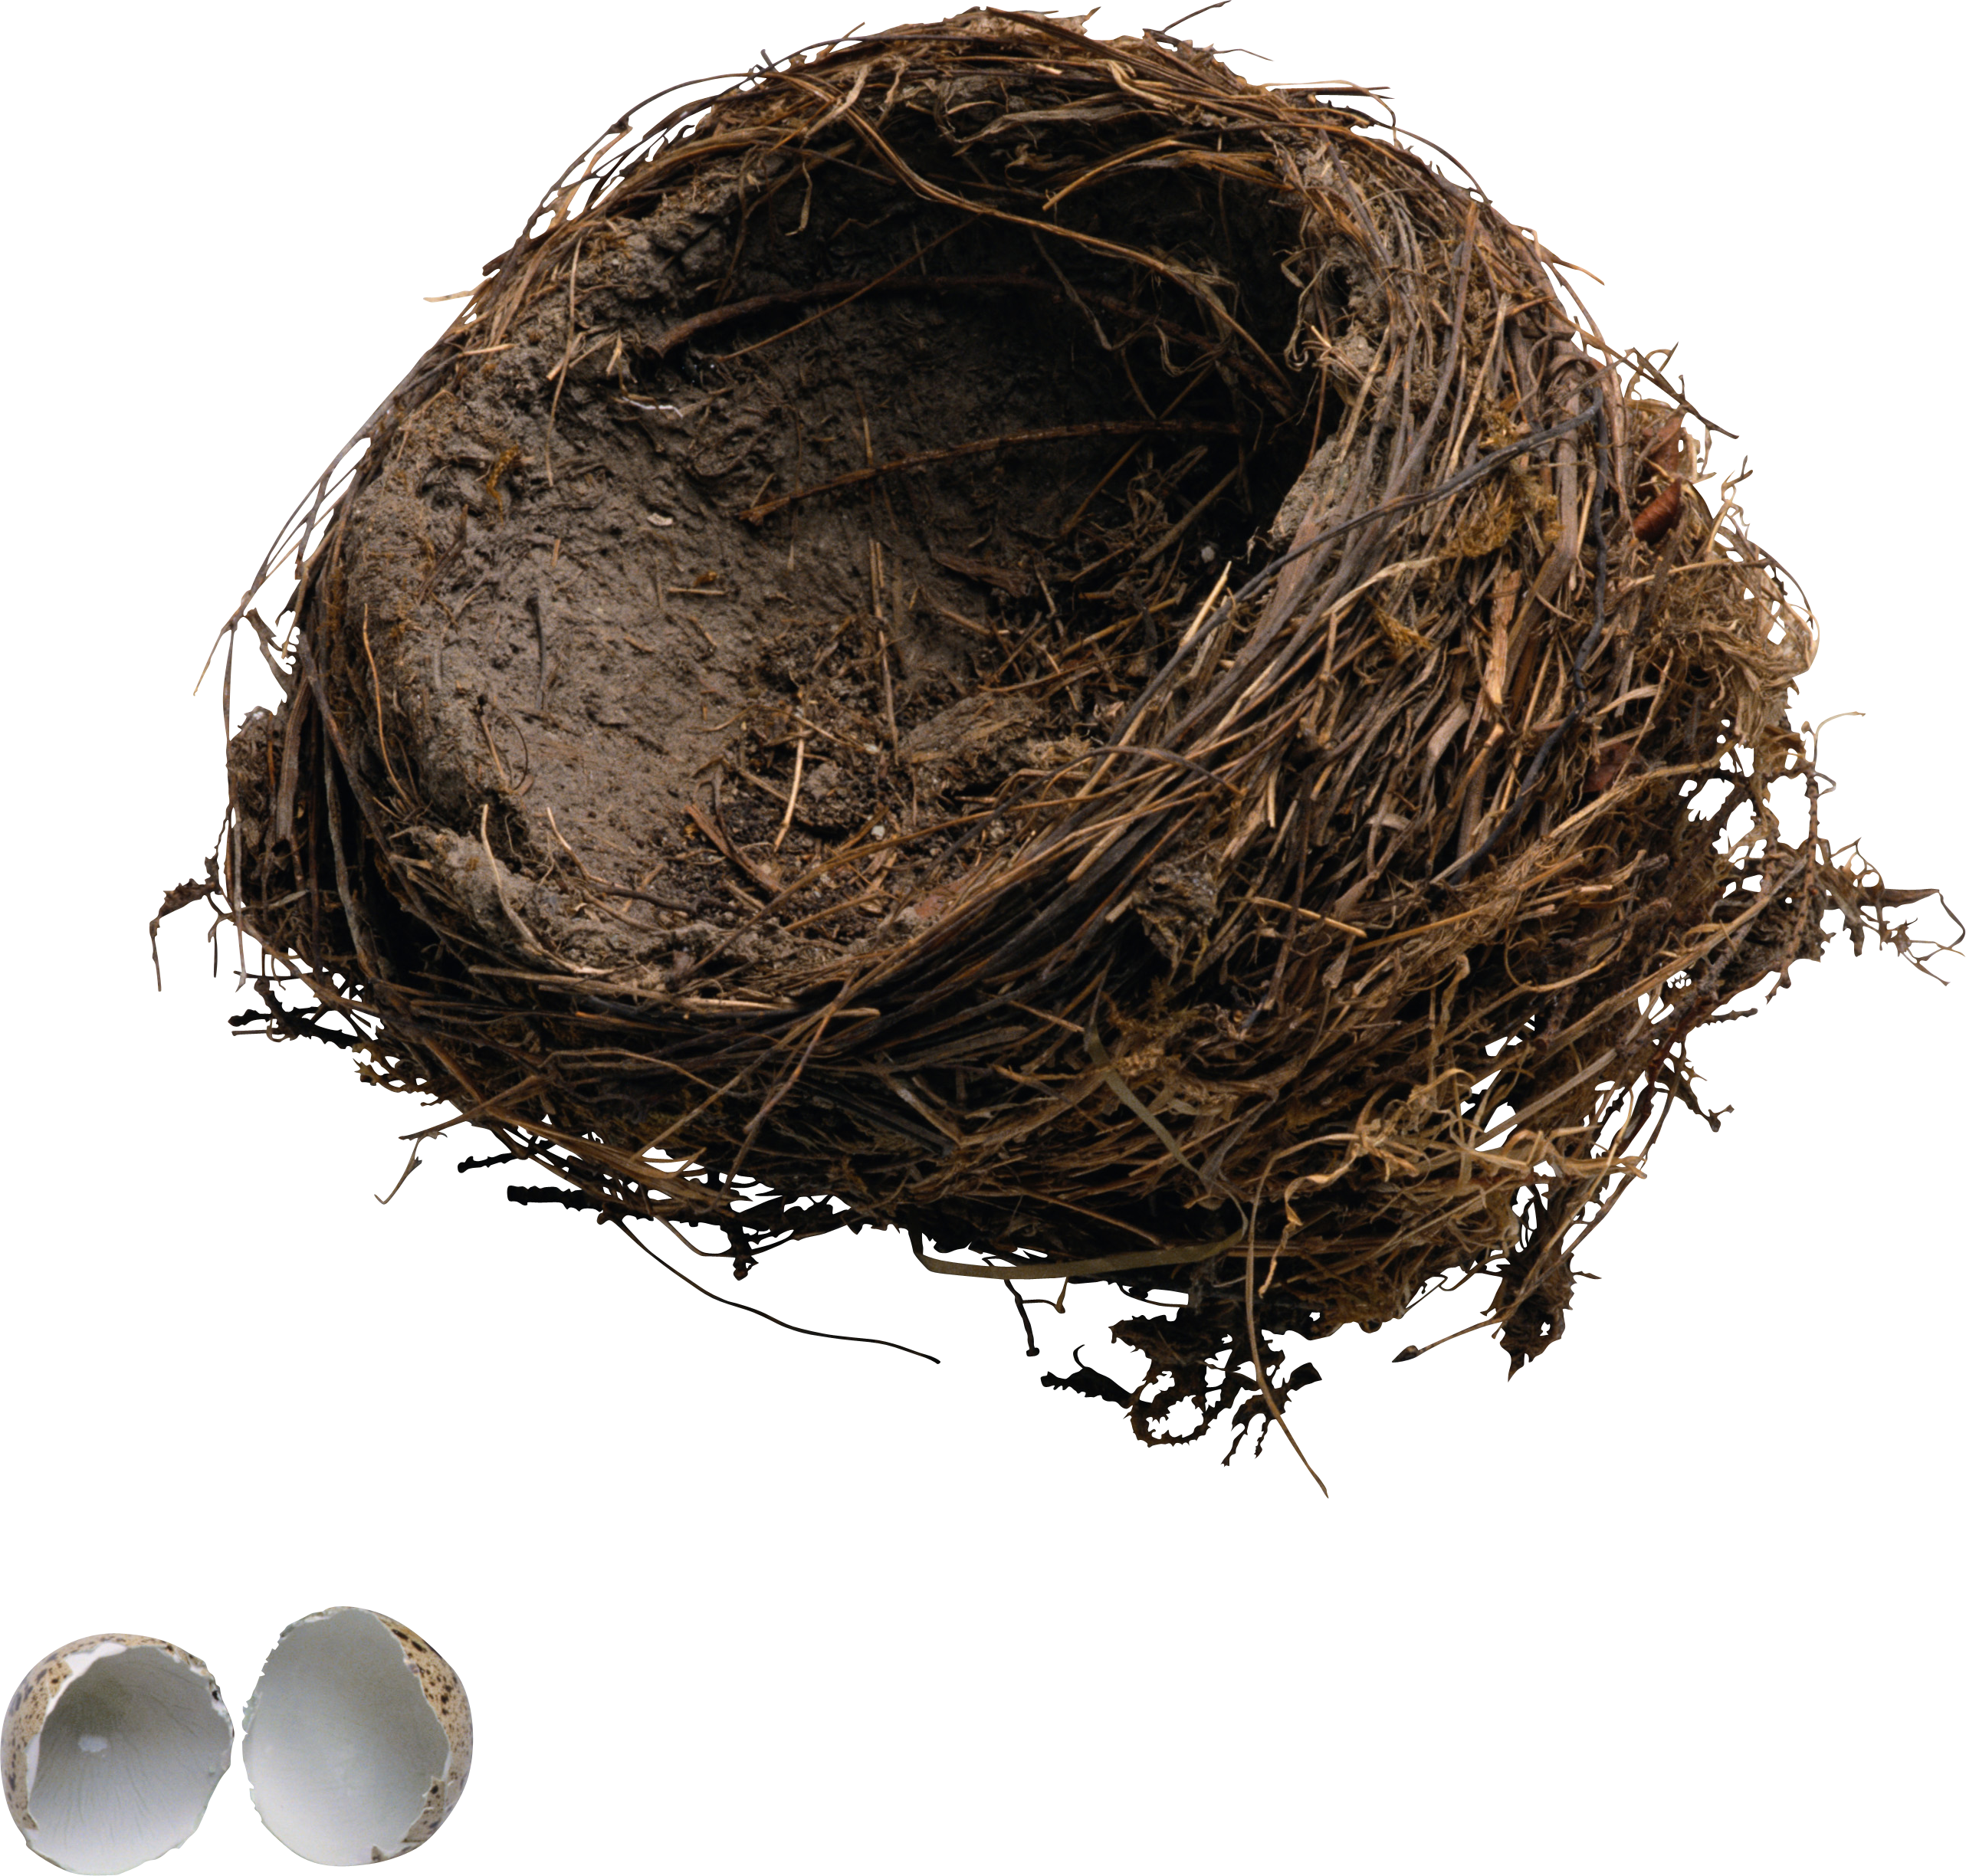 uploads nest nest PNG40 64